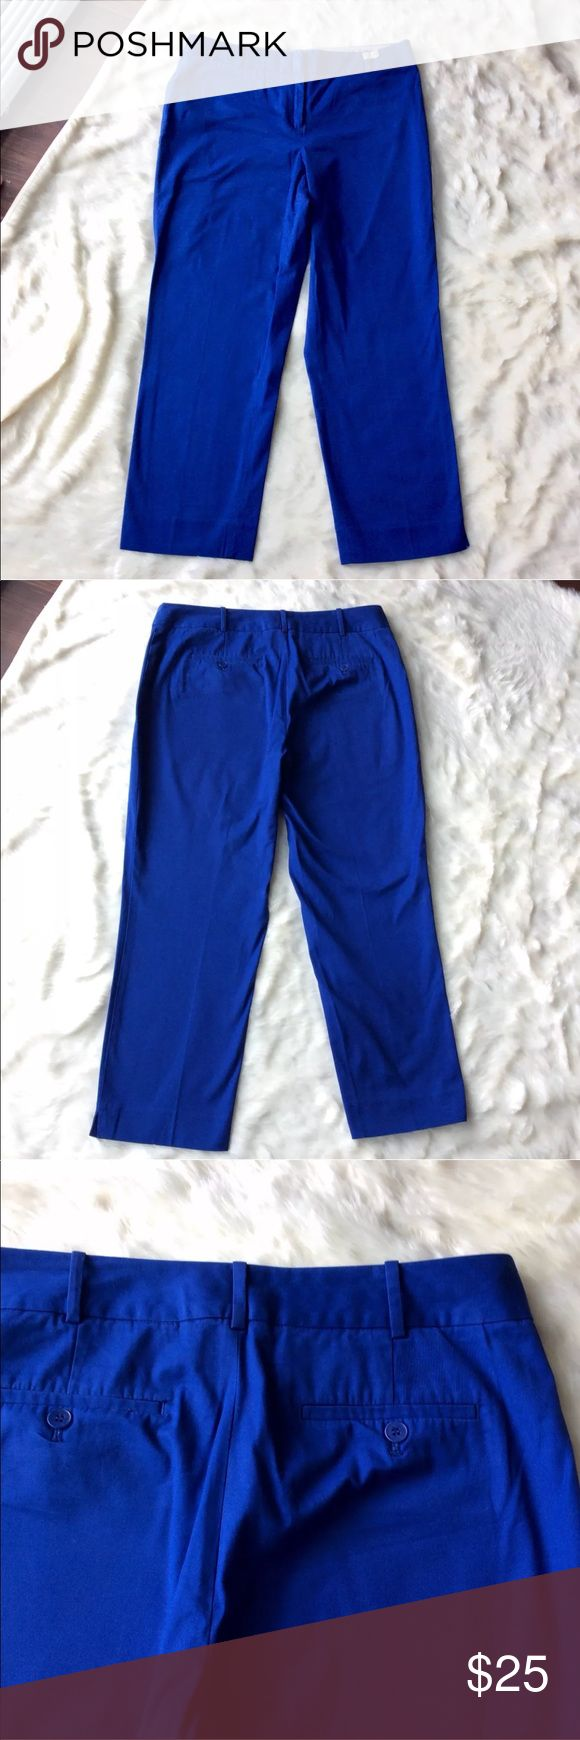 """Talbots Blue Dress Cropped Capri Pants Curvy Fit This pair of Talbots dress Capri pants are in great, preloved condition. They are a size 10, and still have plenty of life left. These have been dry cleaned! They still have the dry cleaning tag. They are blue and are a curvy fit. Perfect for any and all occasions! Measurements are as follows: Waist: 16 1/2"""" Height: 36"""" Inseam: 26"""" Talbots Pants"""